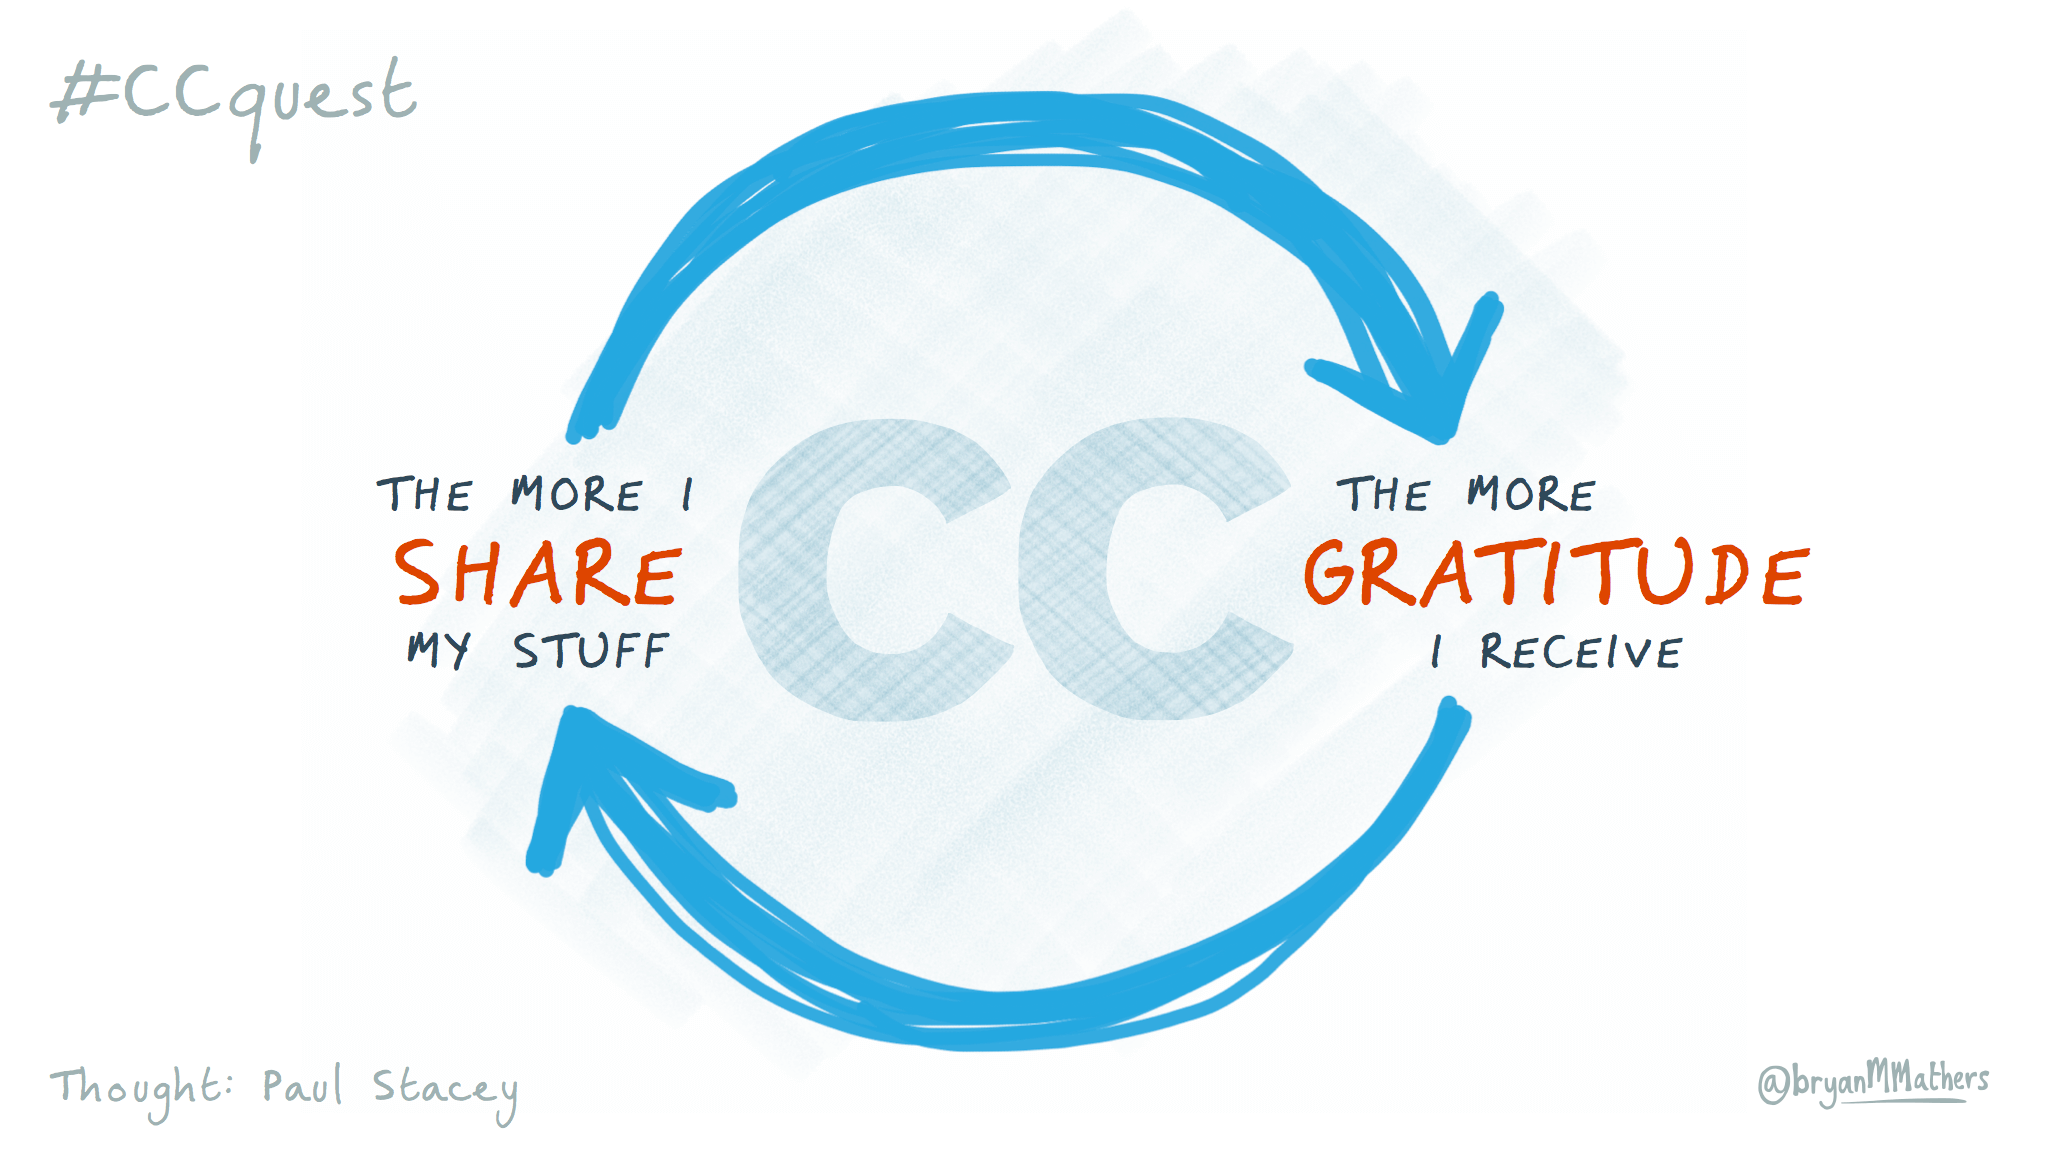 The Gratitude Cycle